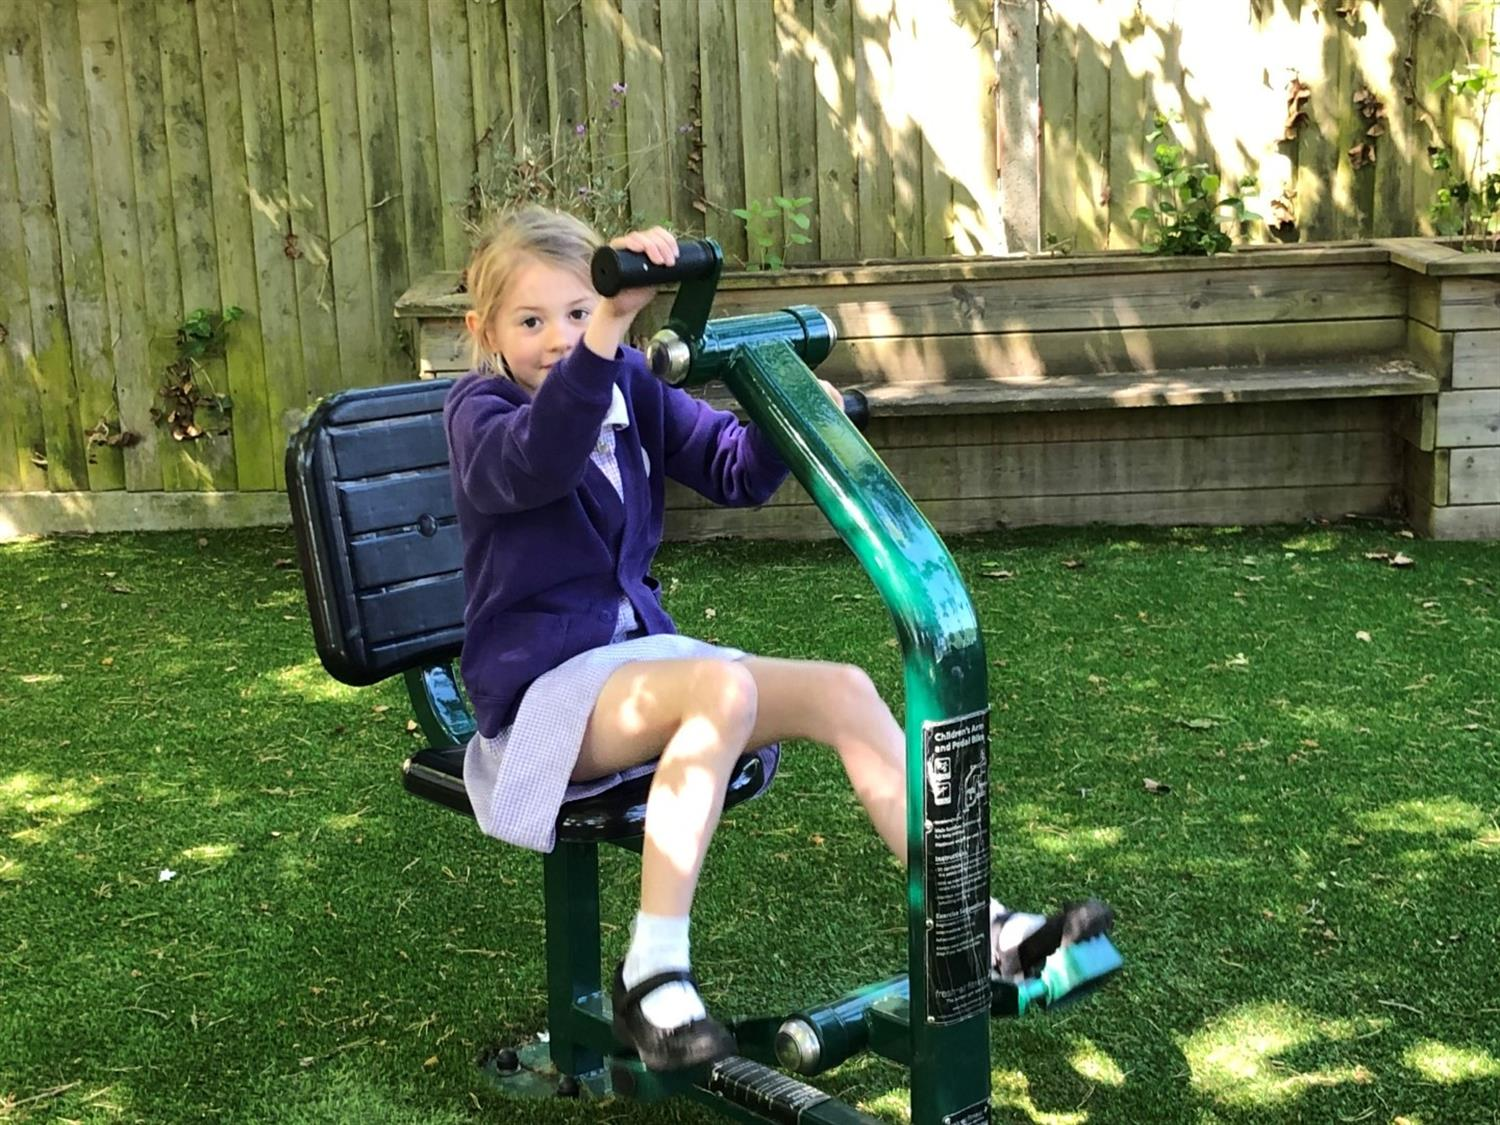 South Ascot Primary S Outdoor Gym Equipment Pentagon Play